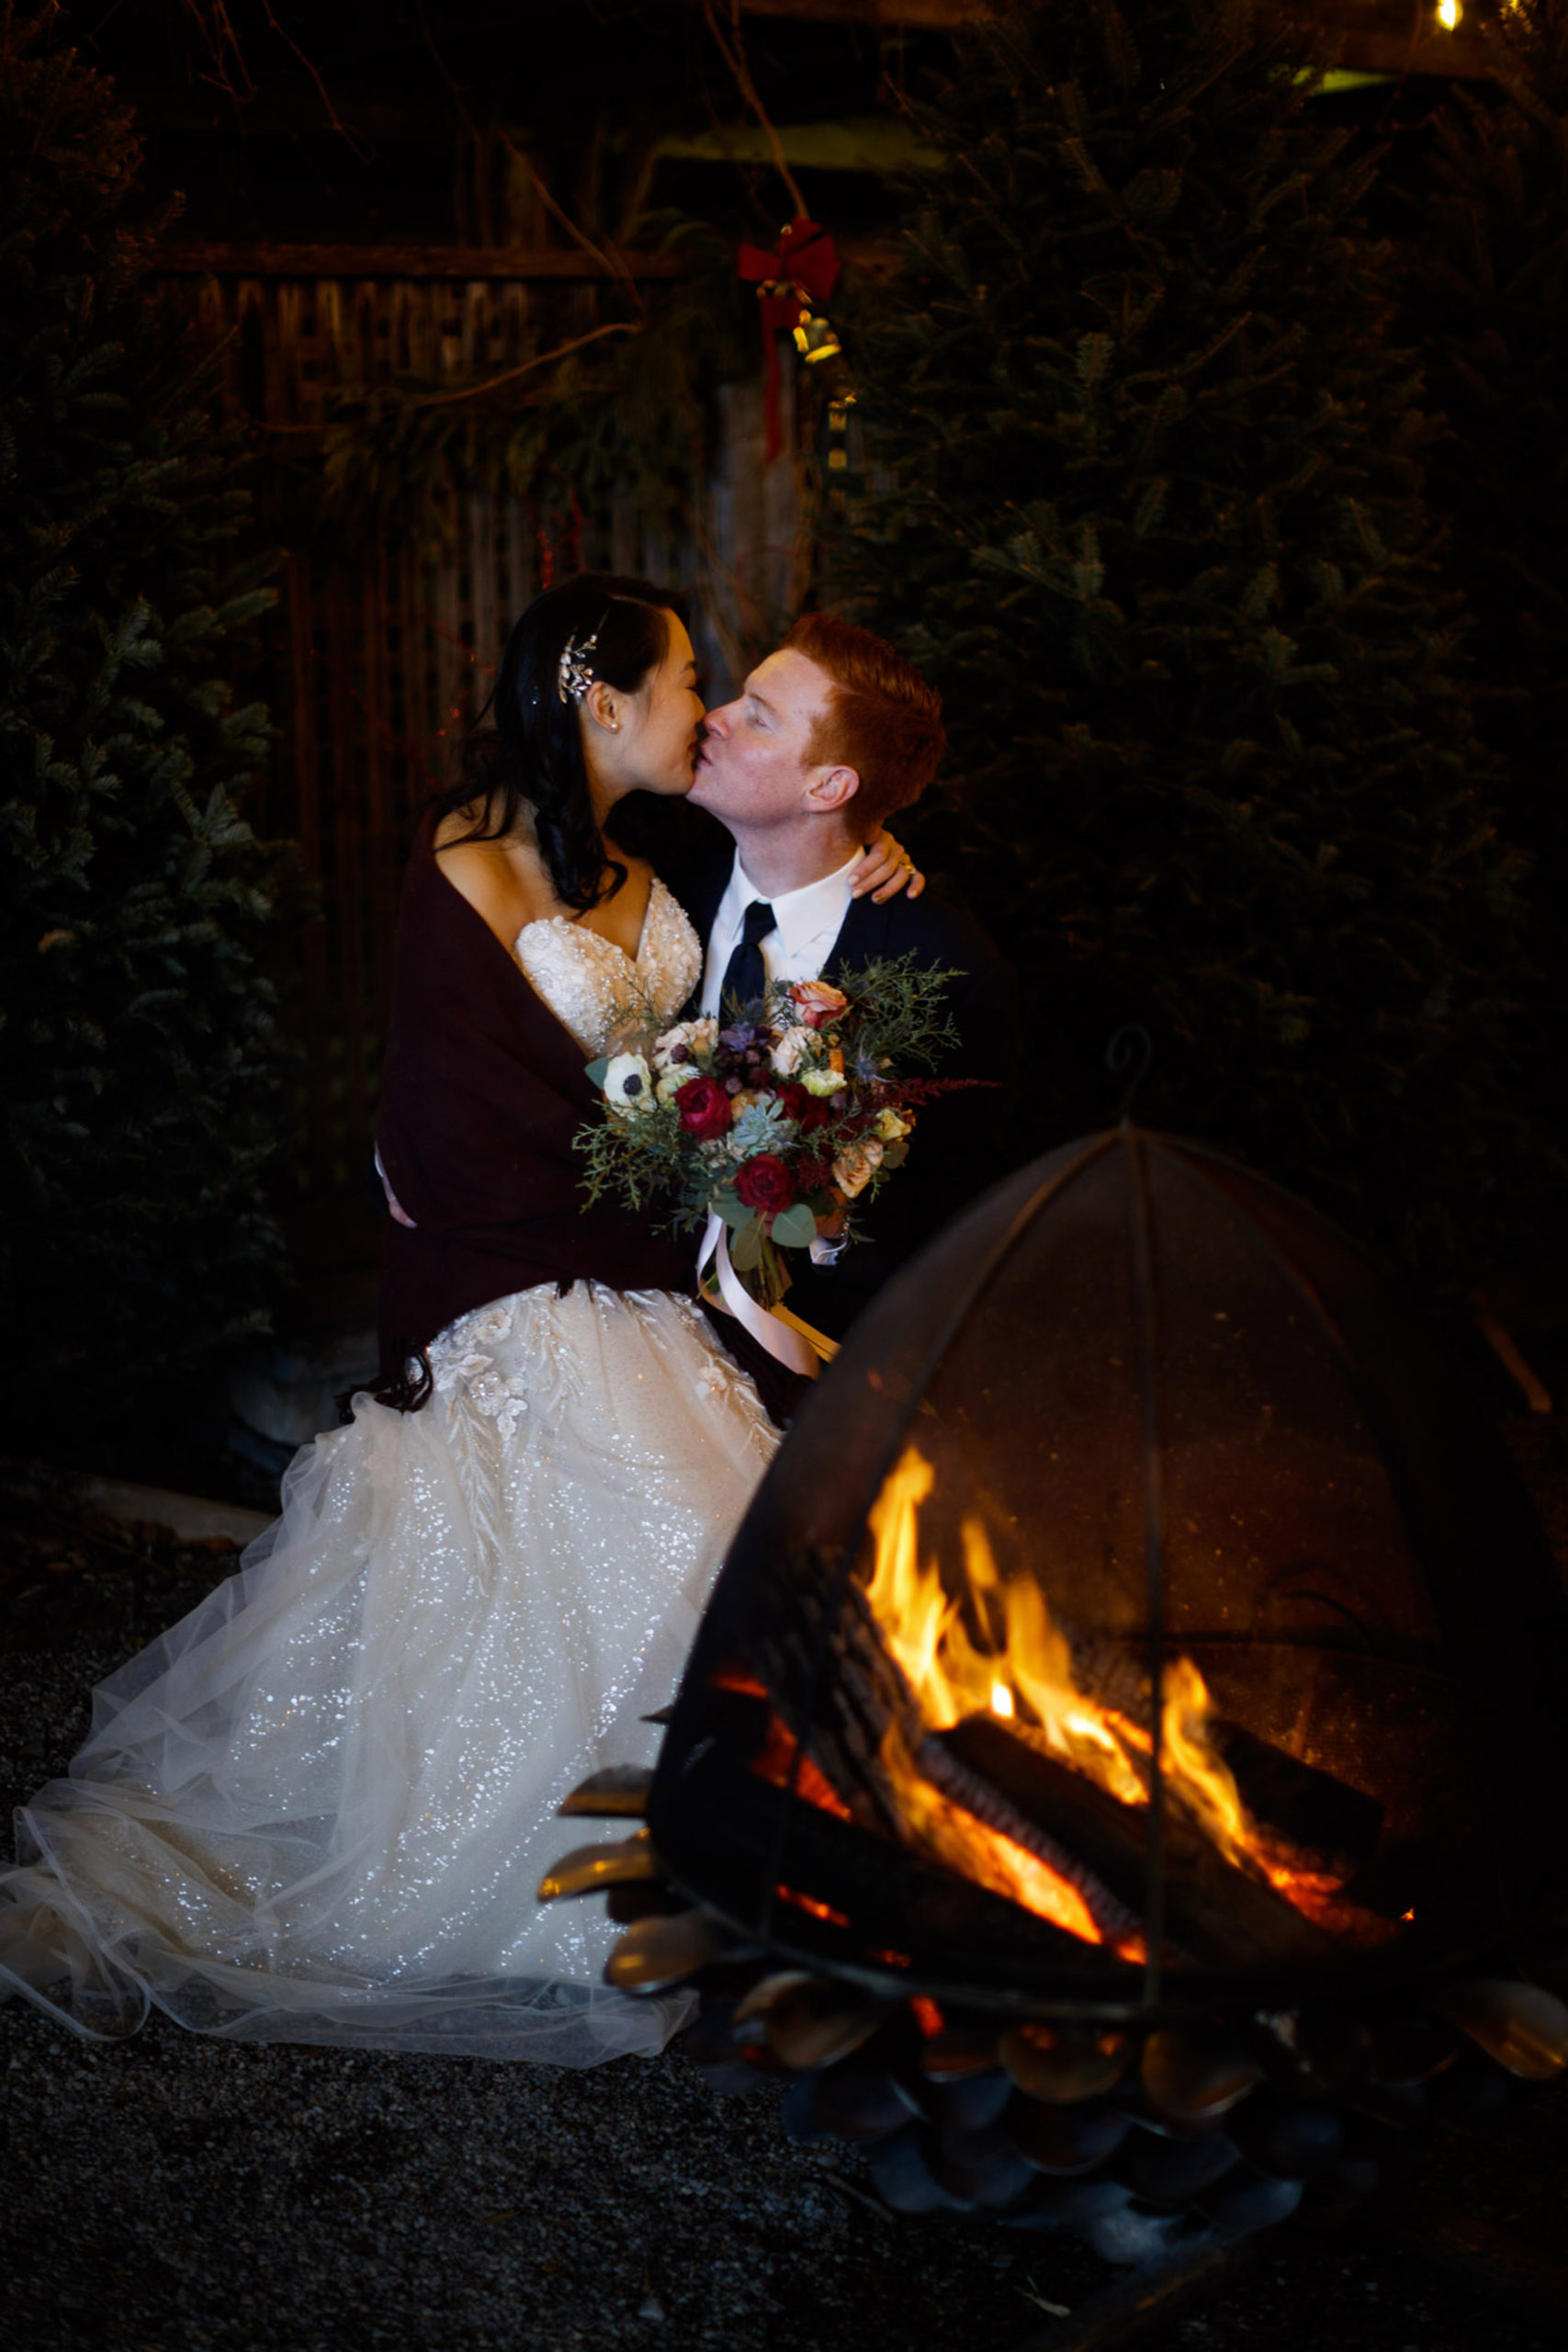 inn on the twenty night jordan fireside couple wedding bride groom